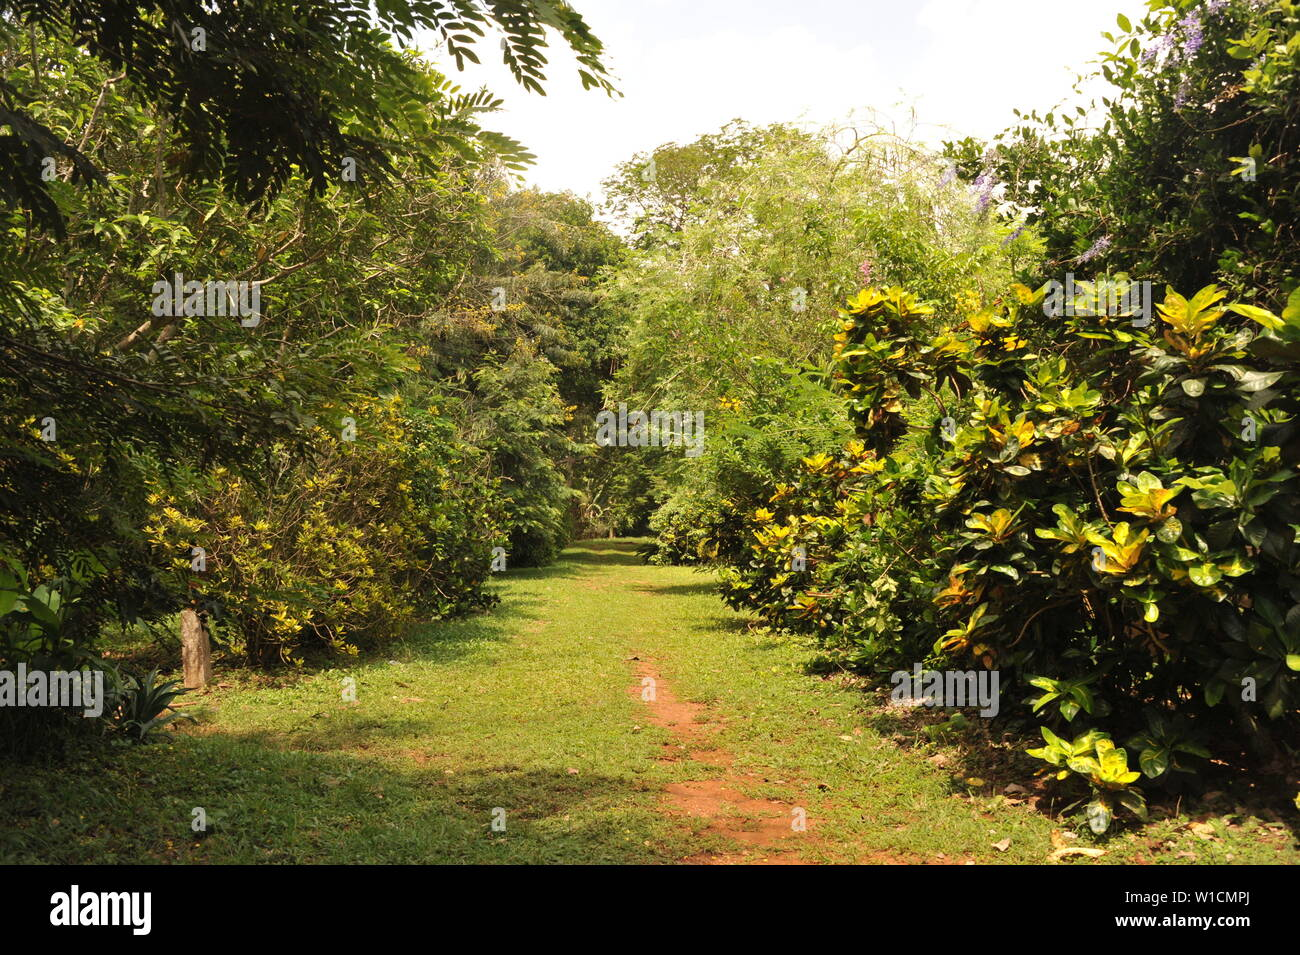 Accra 2nd July 2019 Photo Taken On June 28 2019 Shows The Scenery Of Legon Botanical Garden In Accra Capital Of Ghana The Garden Featuring Tropical Plants And Wild Animals Lies In